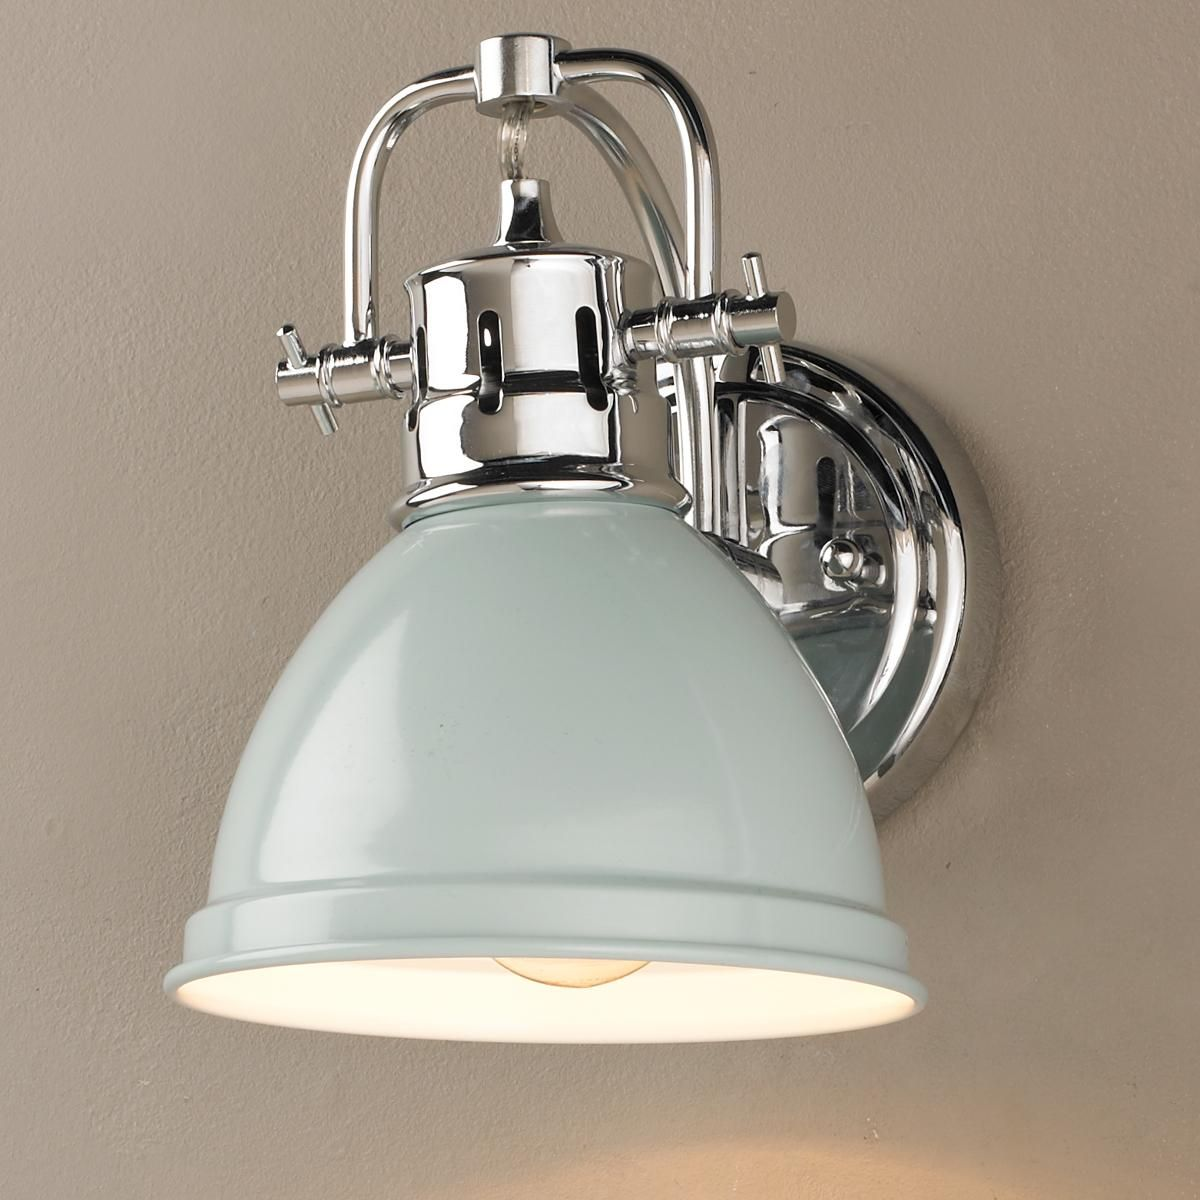 Bathroom Sconces Traditional classic dome shade bath sconce | beach cottages, classic style and